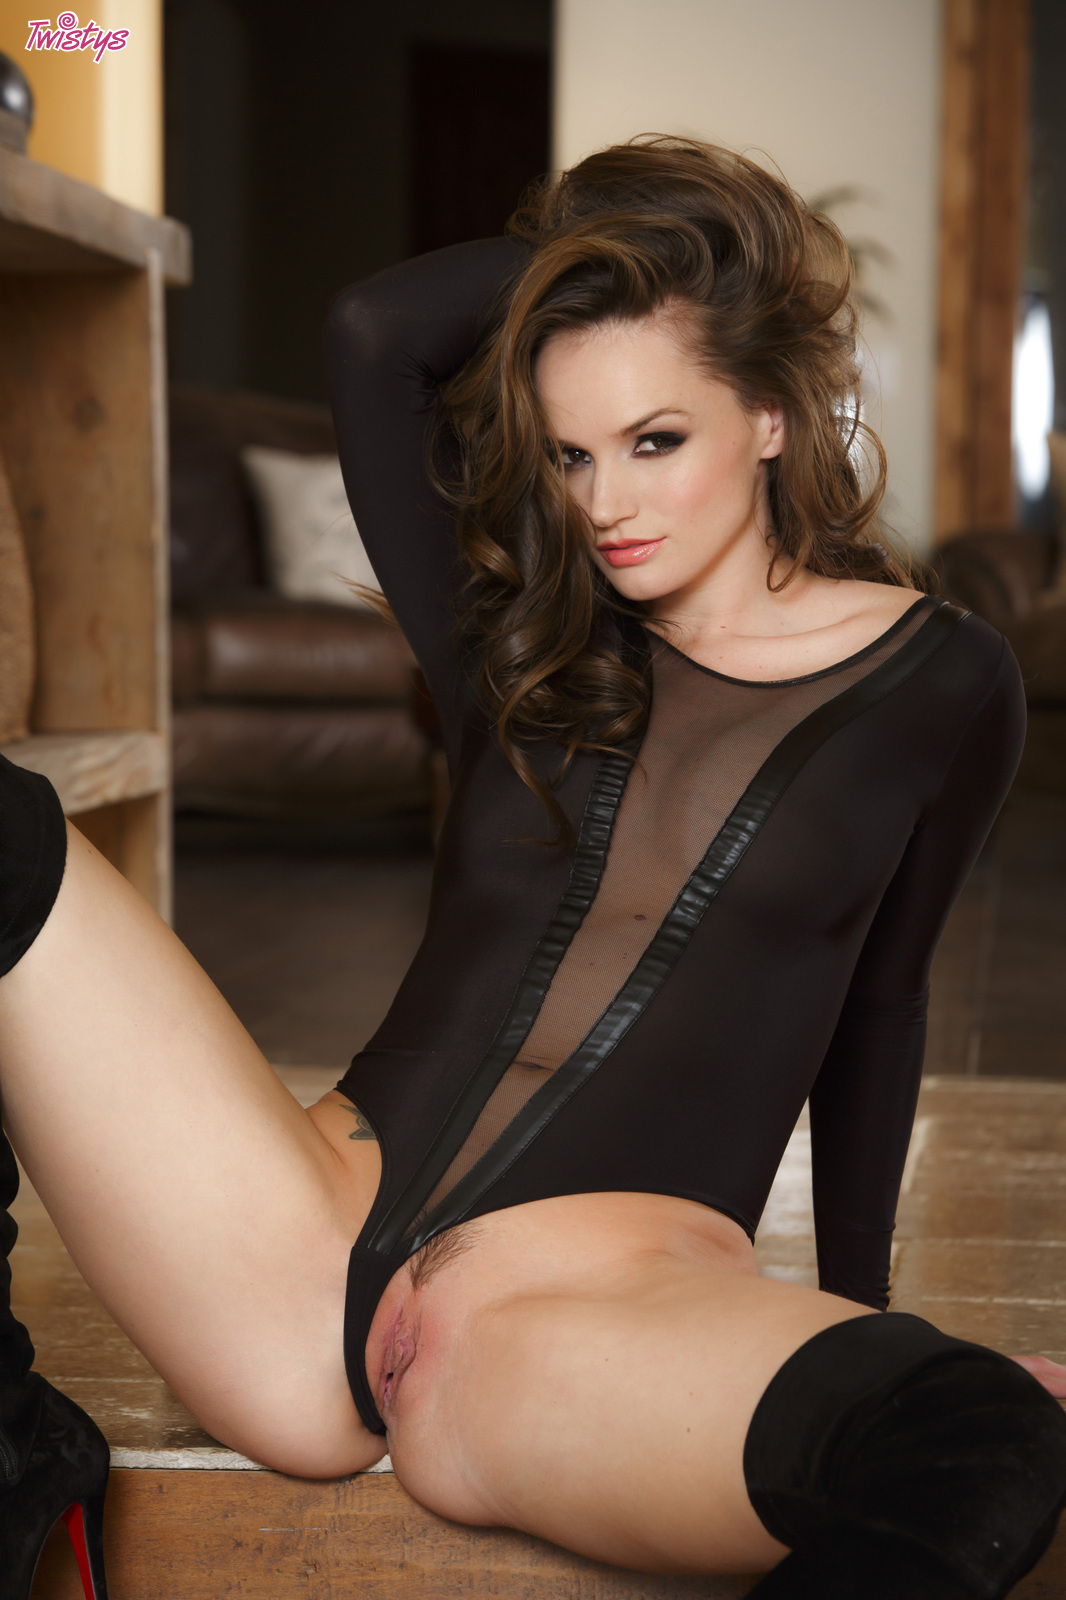 Tori Black – Black Body Suit – Released May 30,2014 – One Of My All Time Favorite Women Gorgeous, Sexy, Dirty … 4